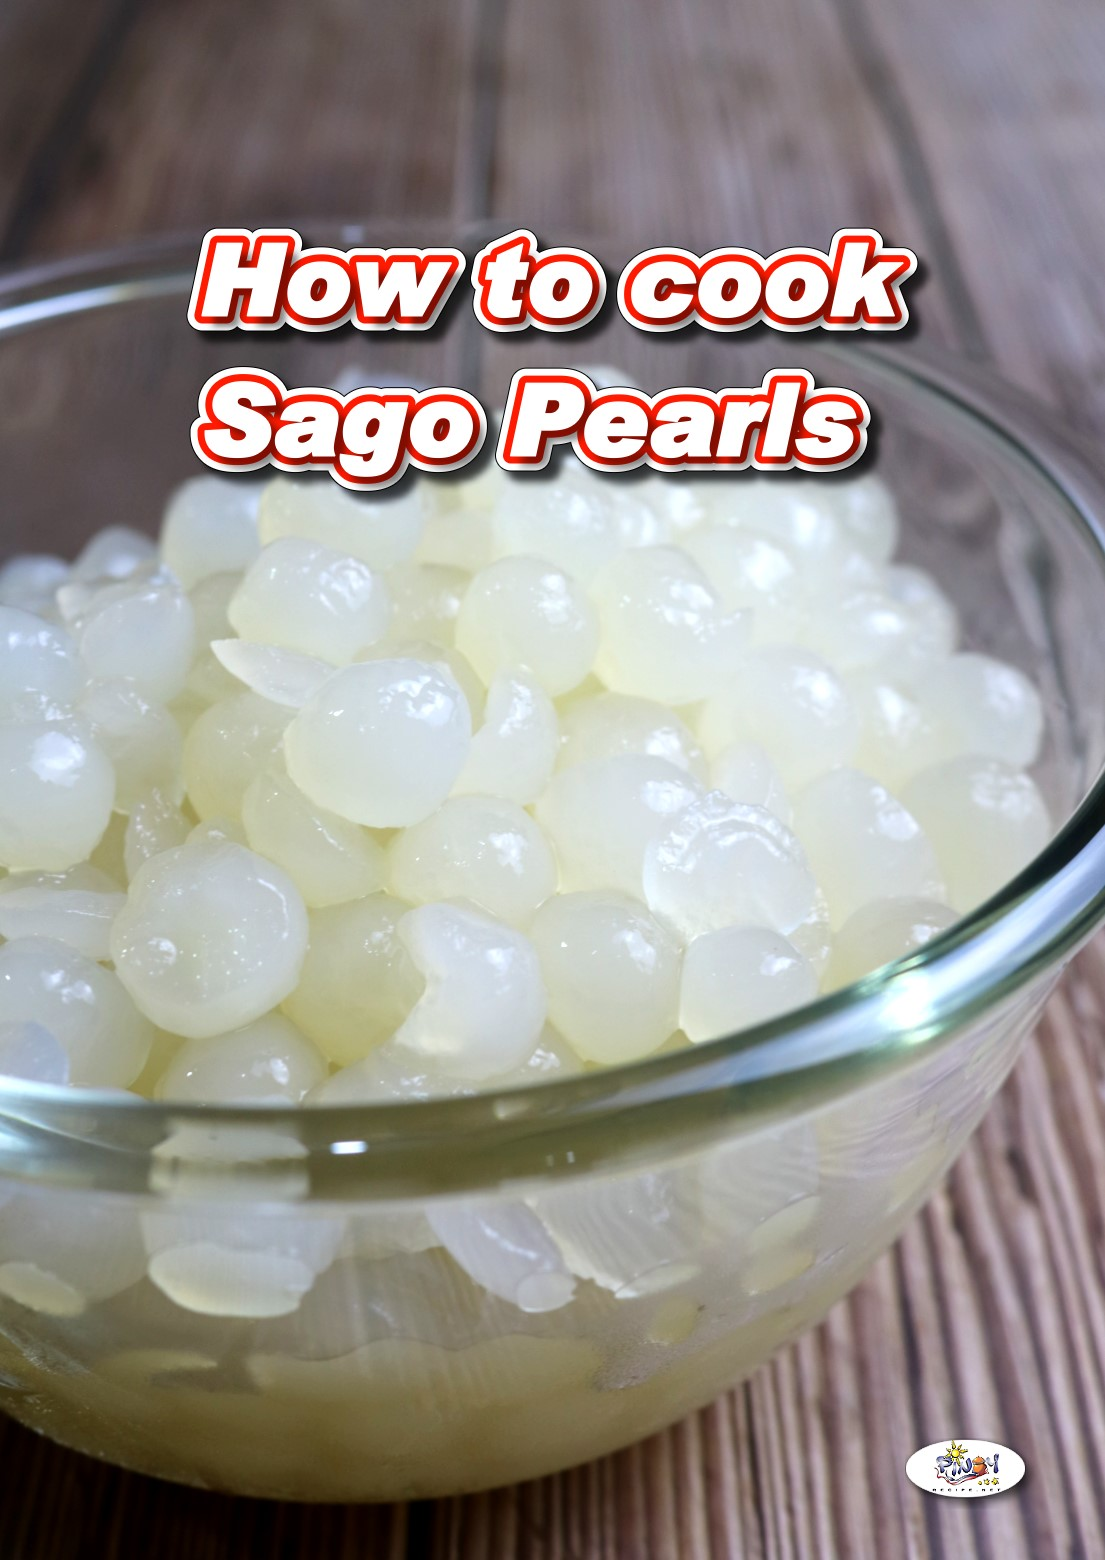 How to Cook Sago Pearls